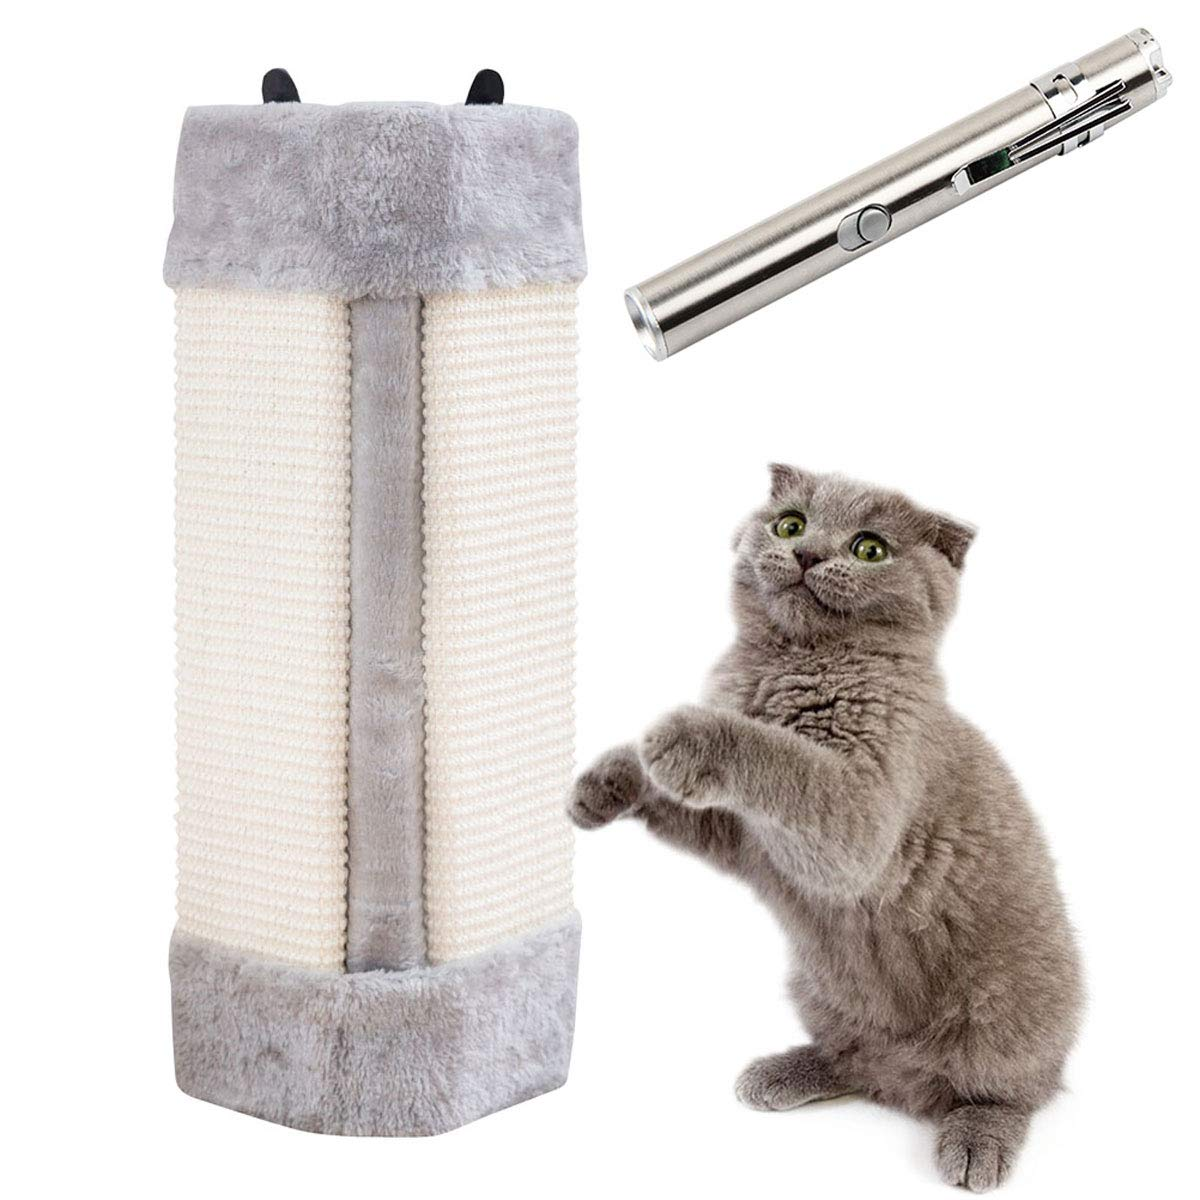 Pampurr Cat Scratcher & USB Chargeable LED Pointer, Cat Scratching Board Pad Hanging Scratcher Cat Wall Mounted Scratching Post/Wall Corner Foldable Pet Sisal Scratcher/Furniture Protector by Pampurr